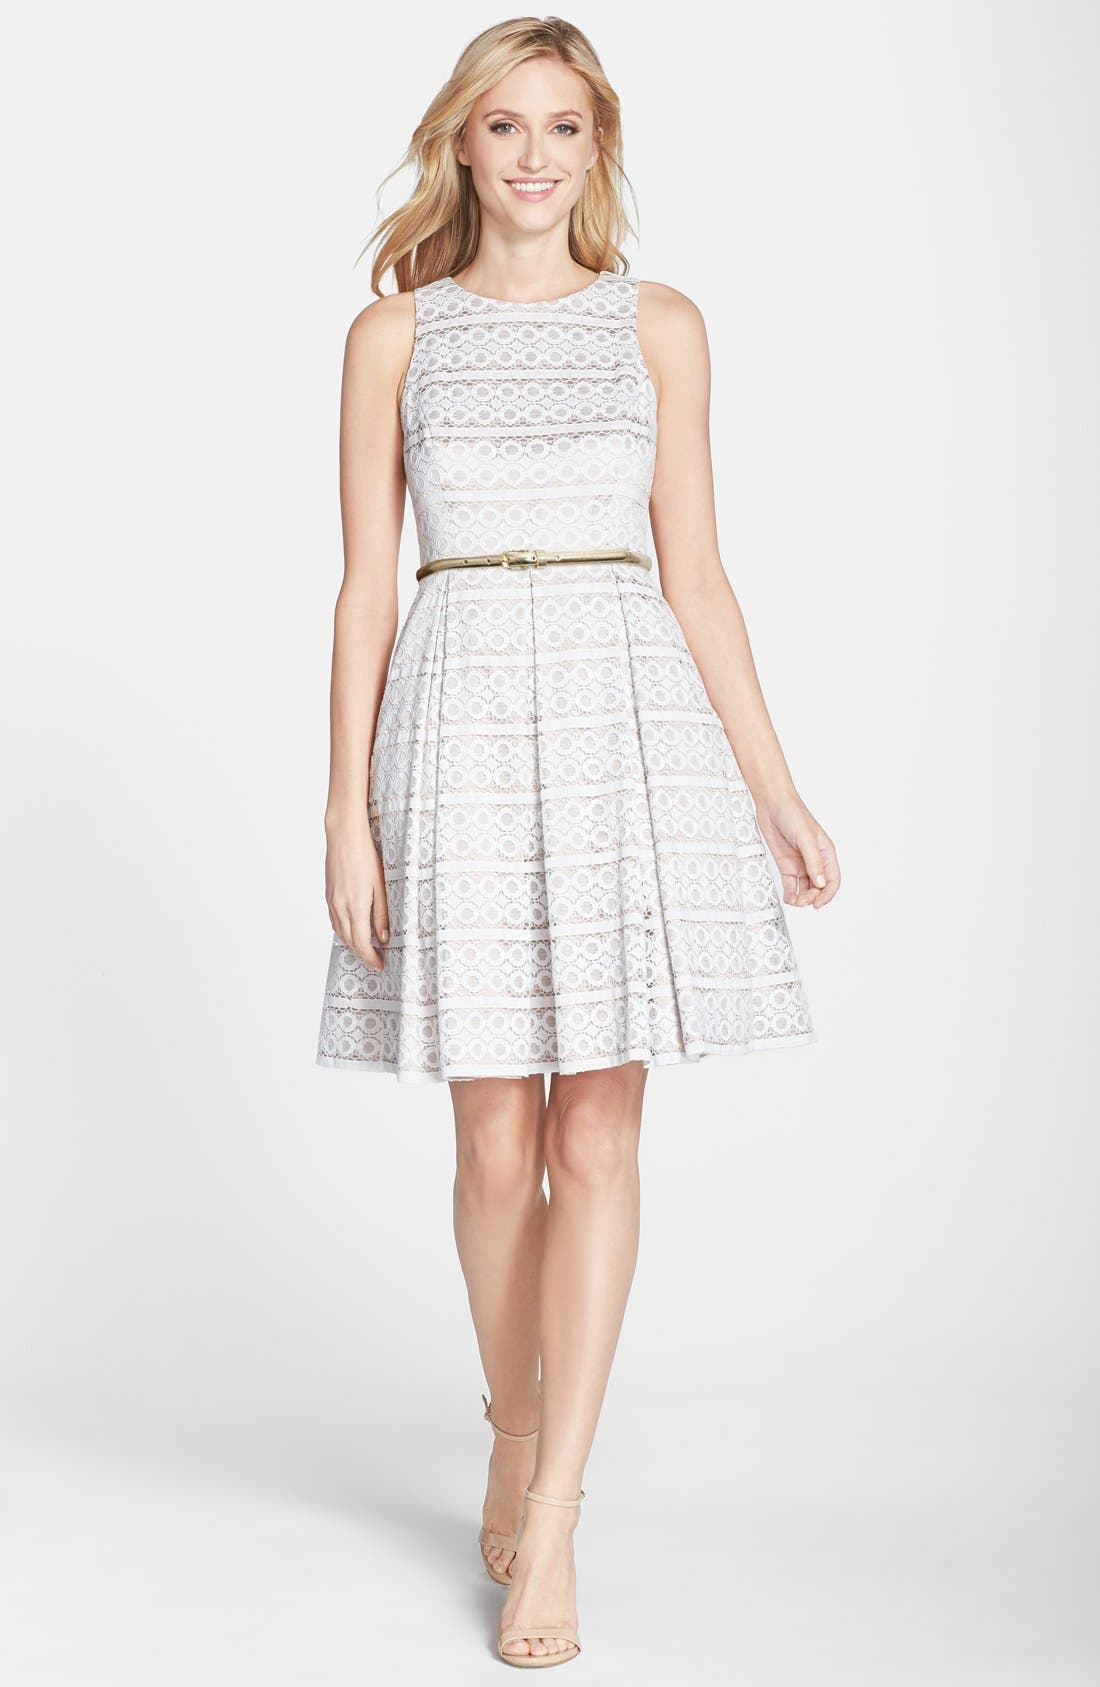 Belted Eyelet Lace Fit & Flare Dress,                             Alternate thumbnail 2, color,                             900